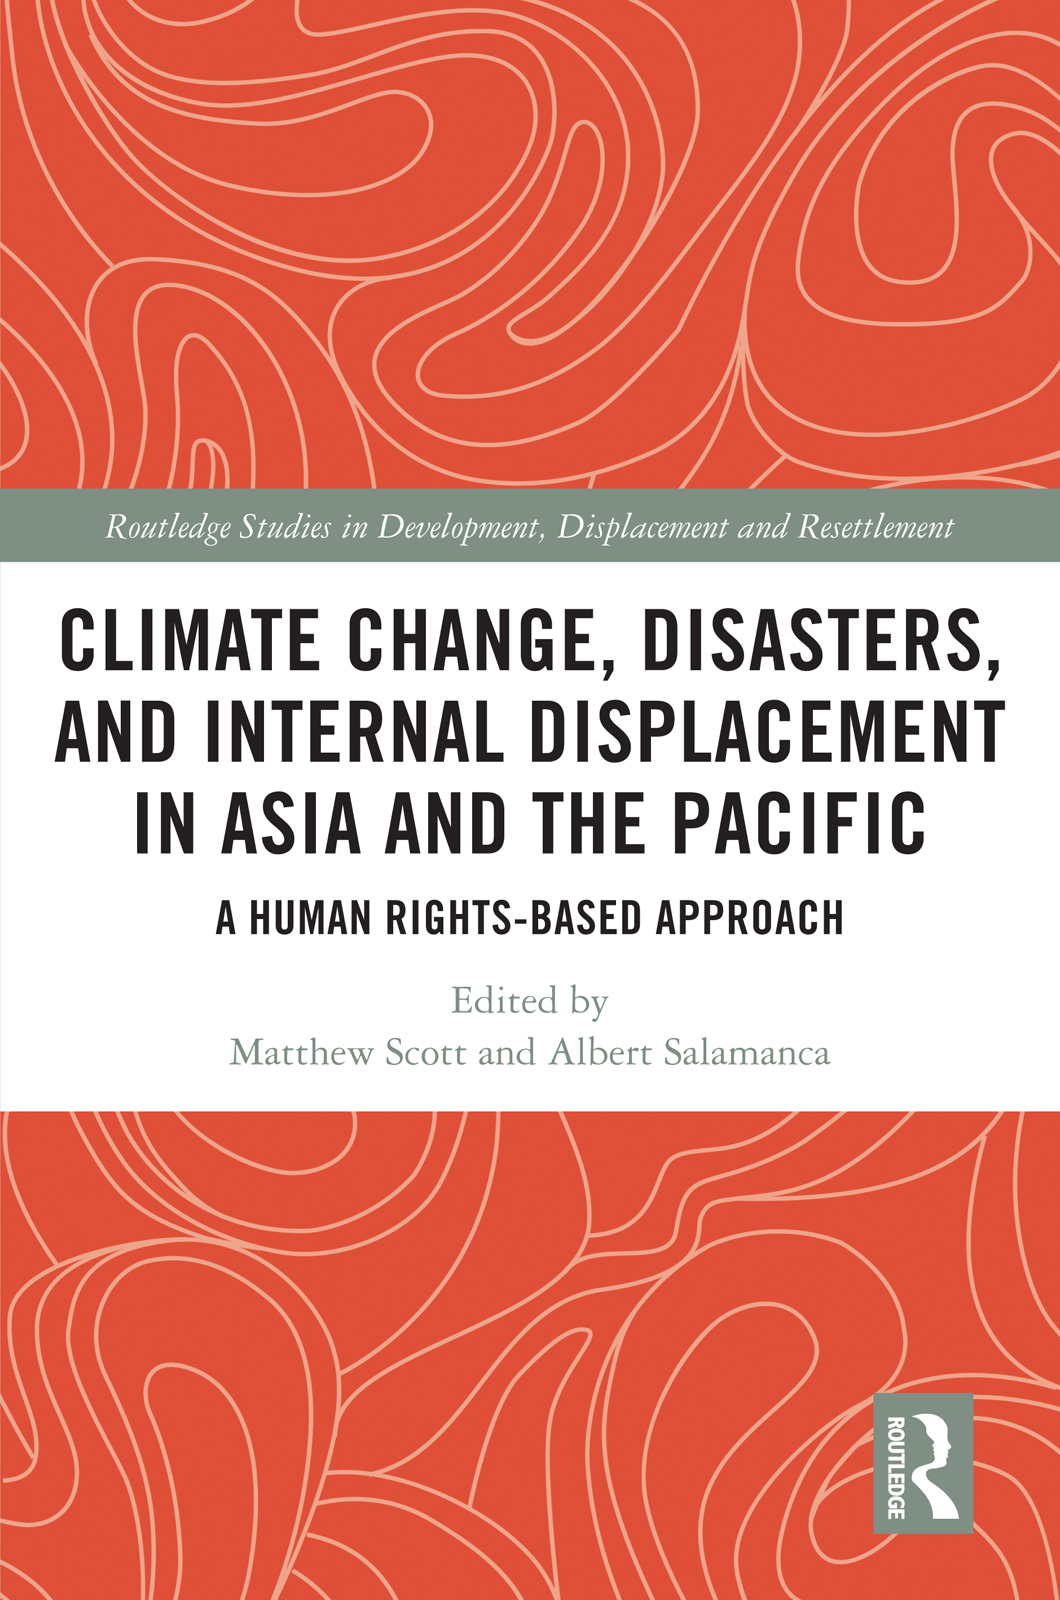 Climate Change, Disasters, and Internal Displacement in Asia and the Pacific